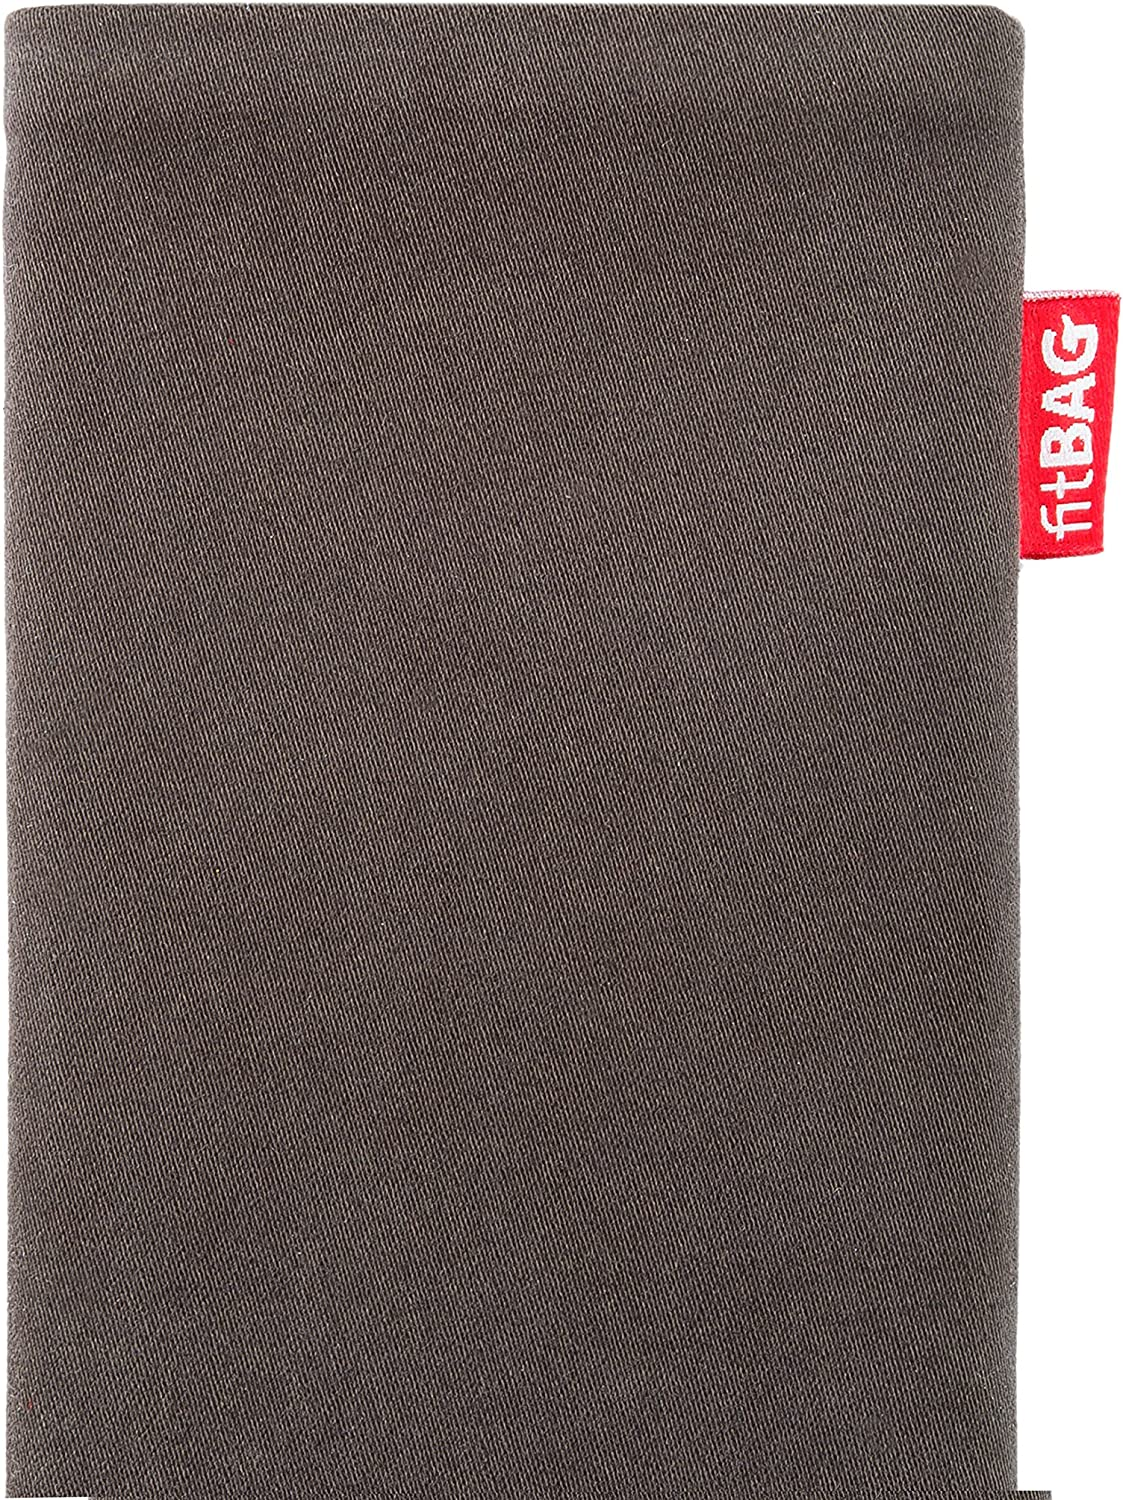 Made in Germany fitBAG Twist Gray custom tailored sleeve for Apple iPhone 12 Fine suit fabric pouch case cover with MicroFibre lining for display cleaning iPhone 12 Pro